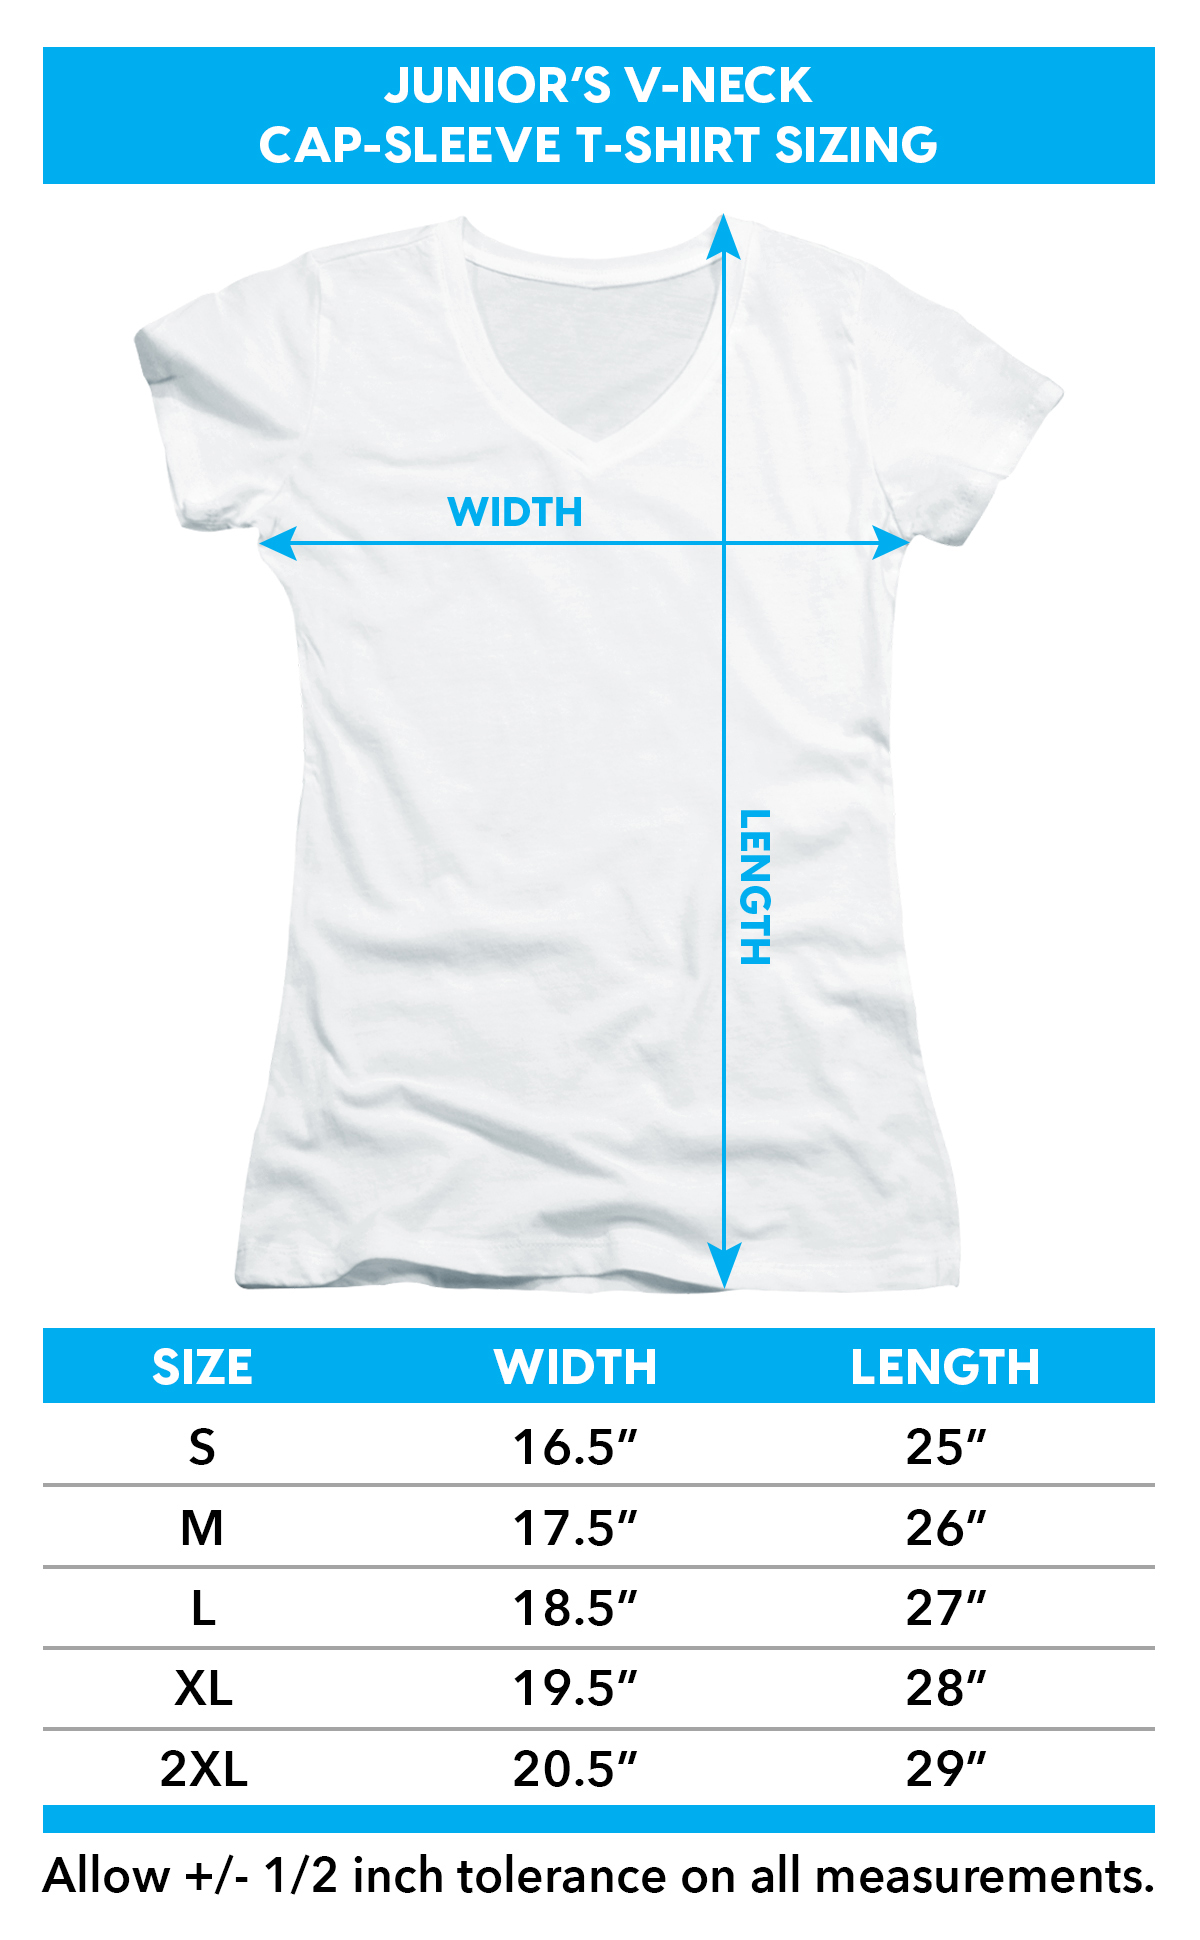 Sizing chart for Slap Shot Girls V Neck T-Shirt - Goalie Mask TRV-UNI191-JV